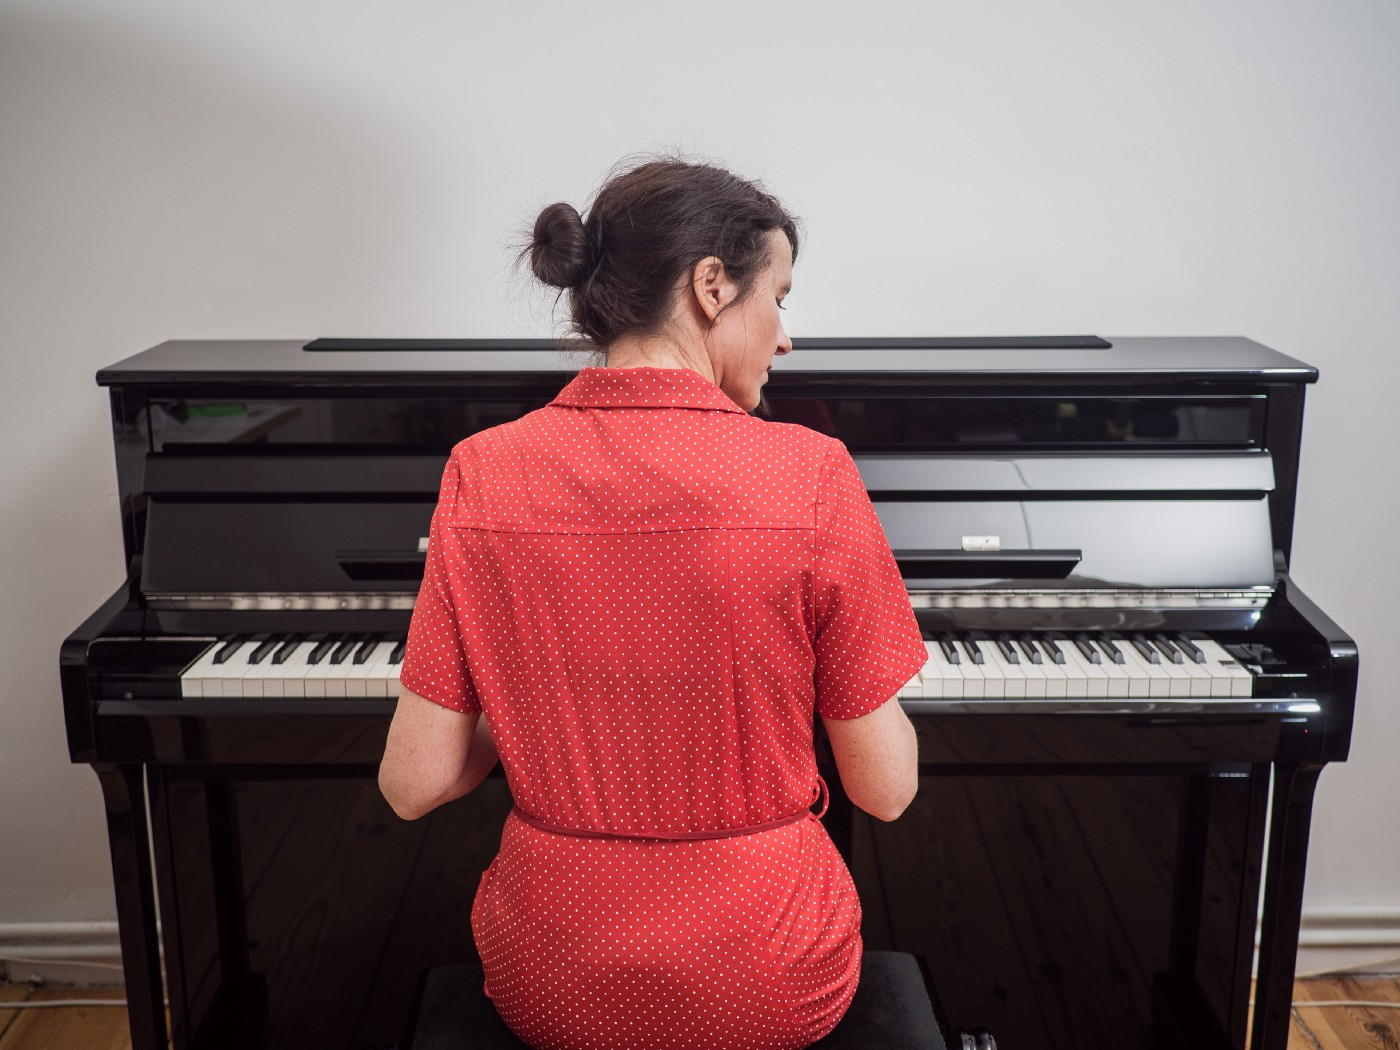 Rear view of a woman in a red dress playing the piano.